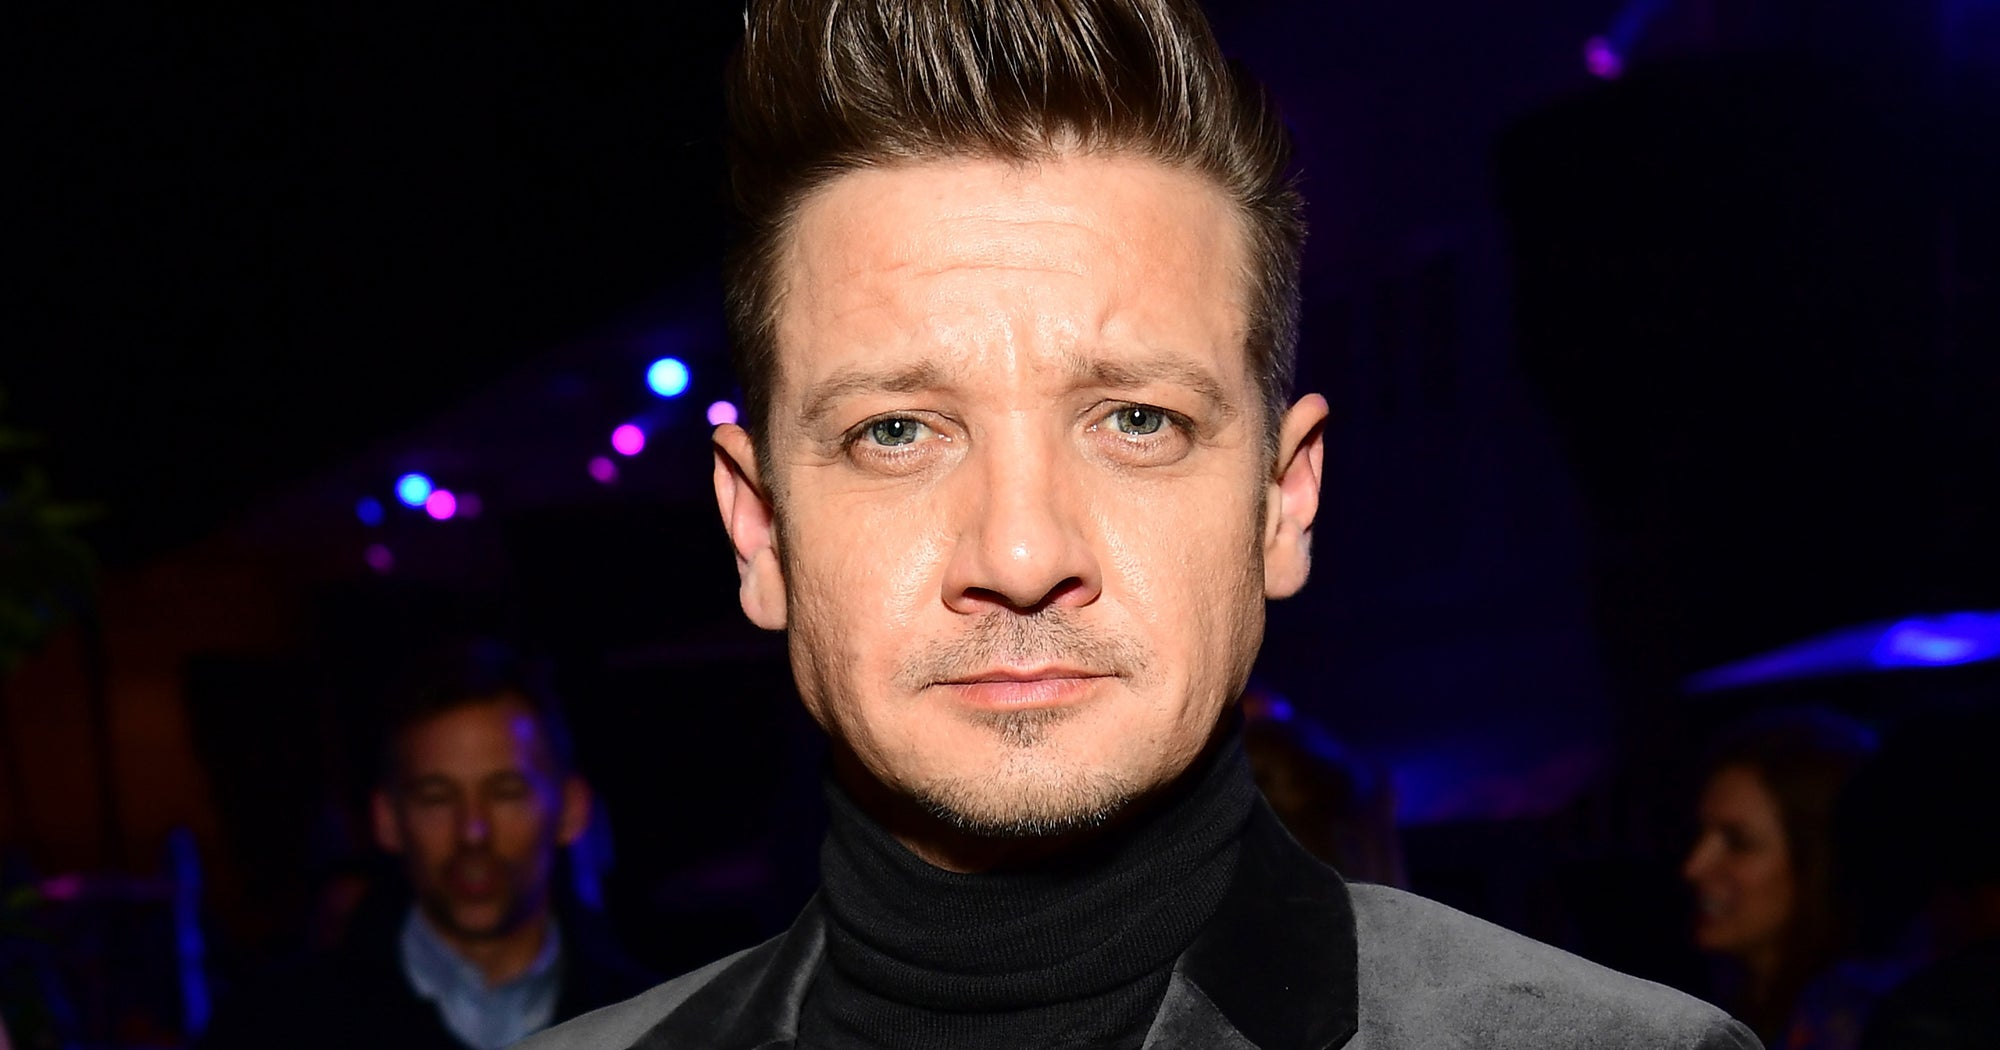 Jeremy Renners Ex-Wife Wants Protection in Custody Case